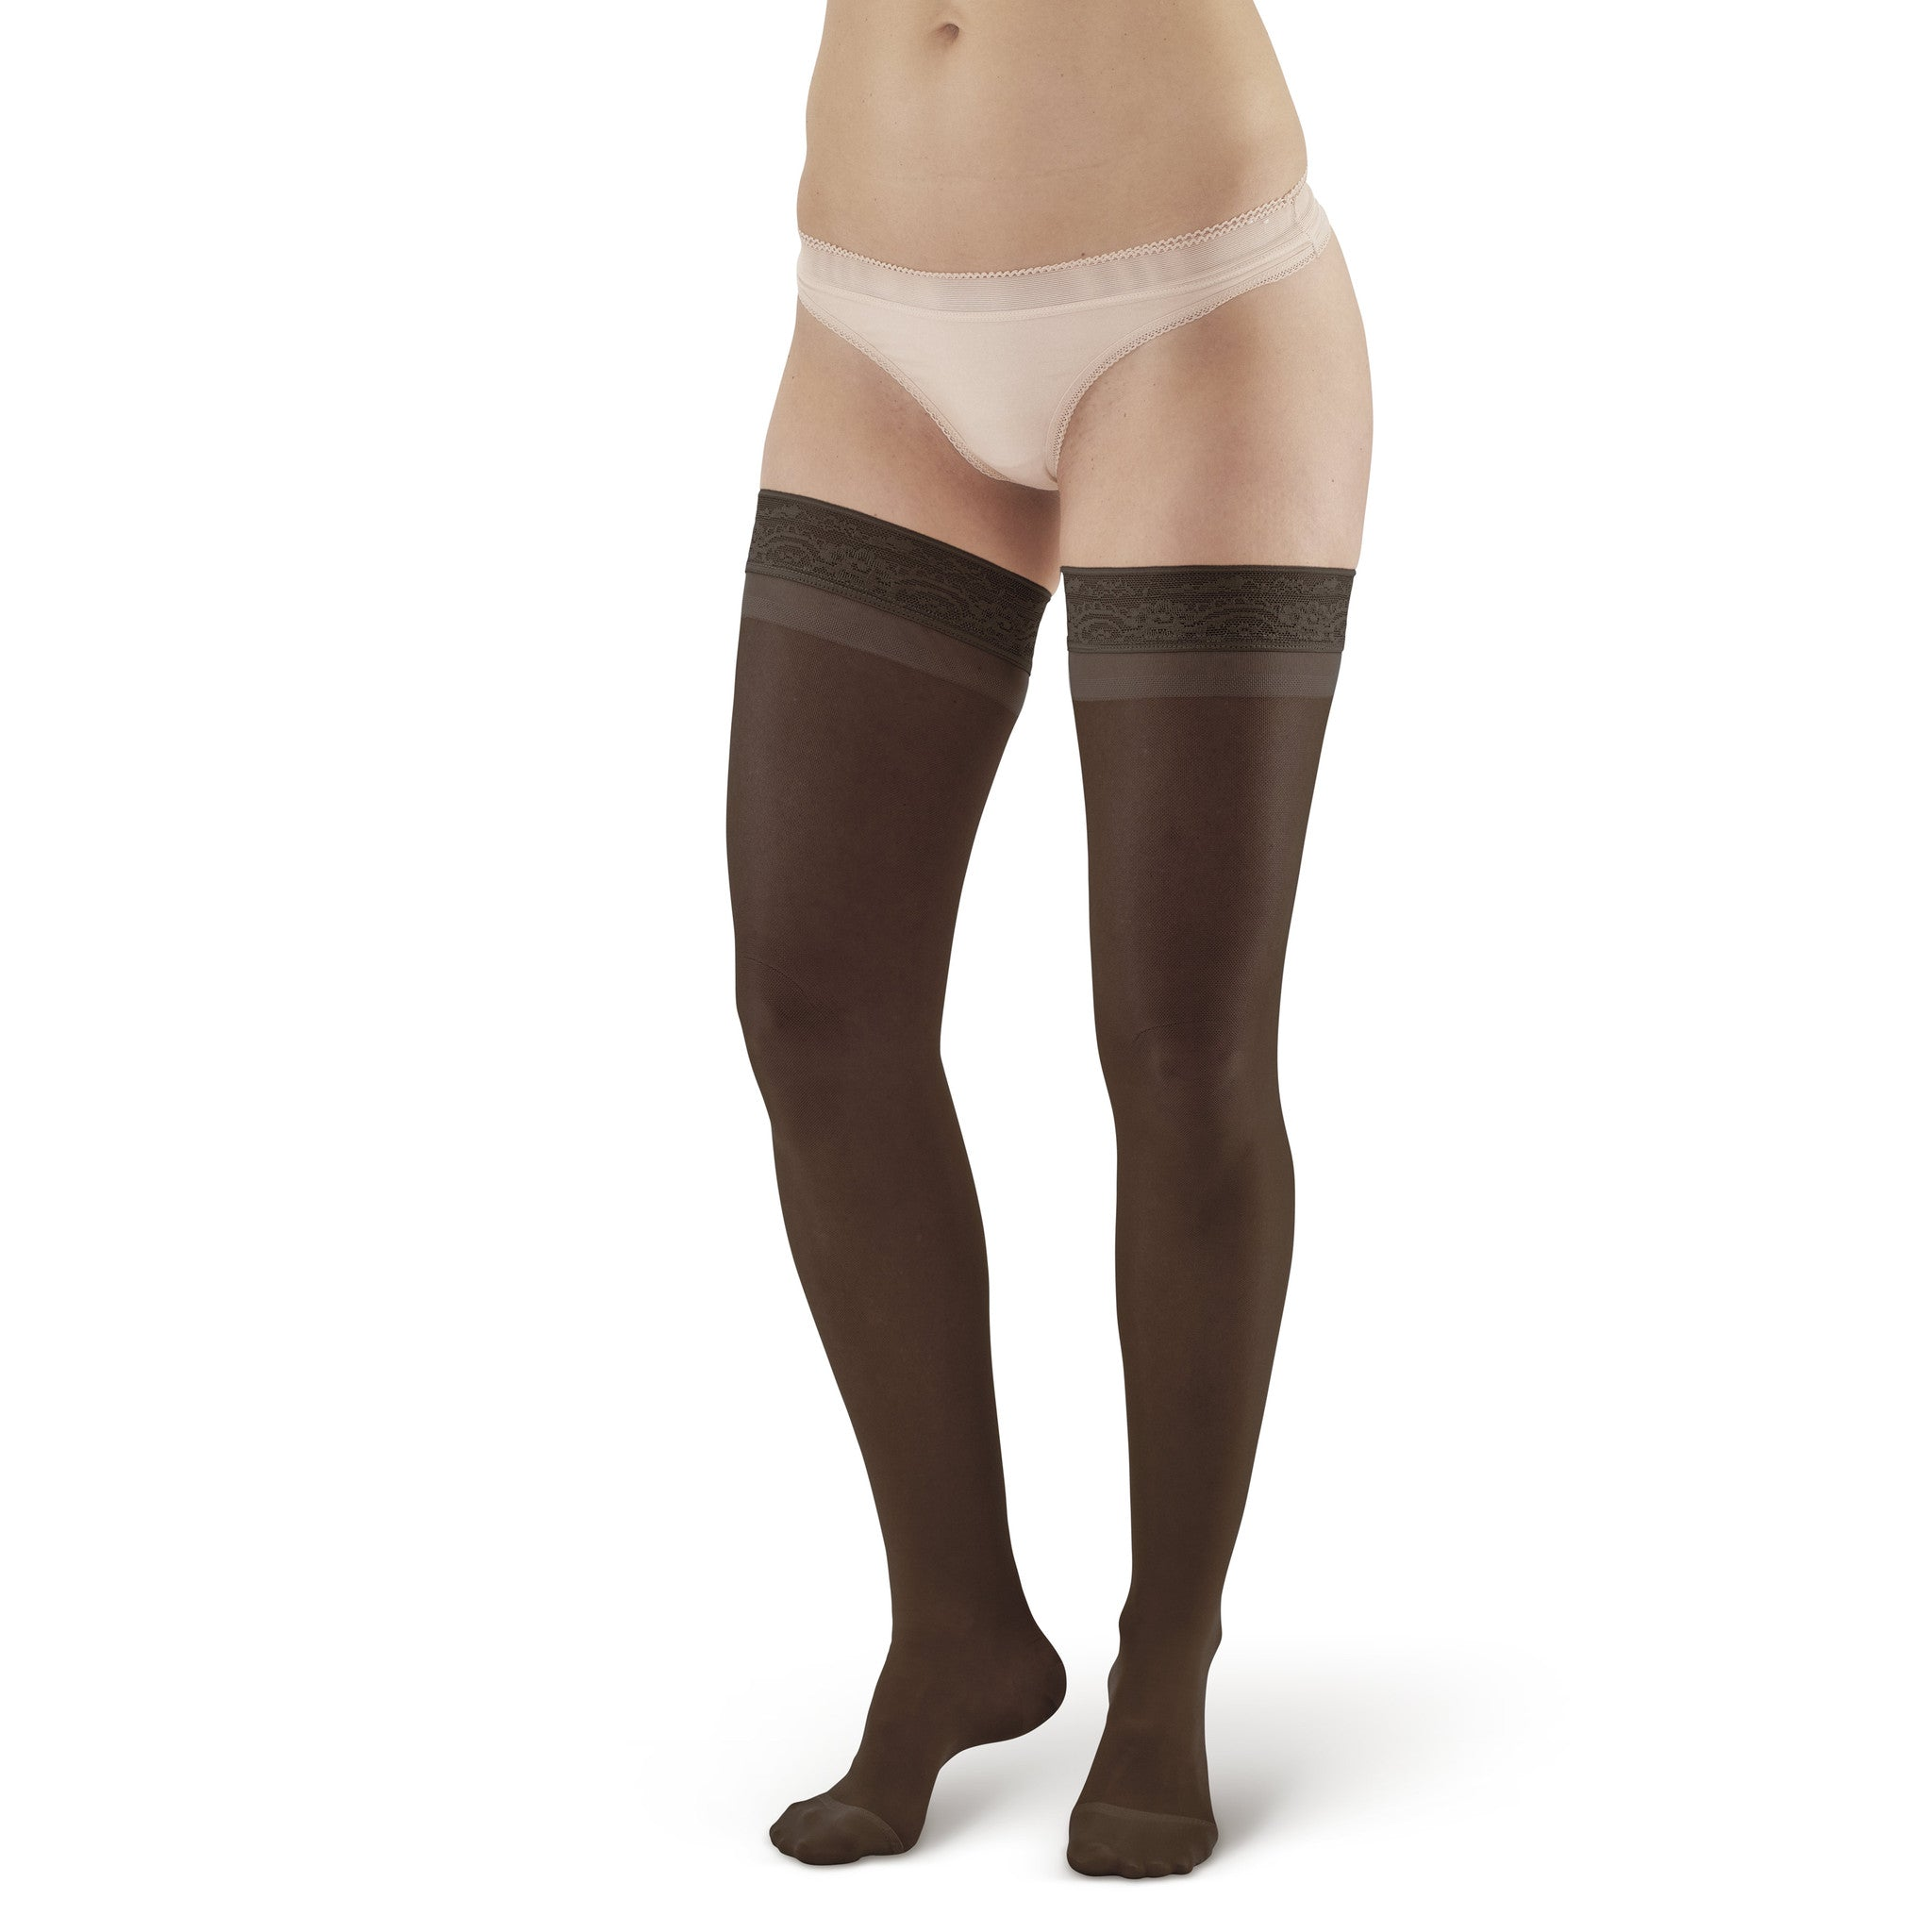 aac1e8ac0ac ... AW Style 4 Sheer Support Closed Toe Thigh Highs w  Lace Band - 15- ...